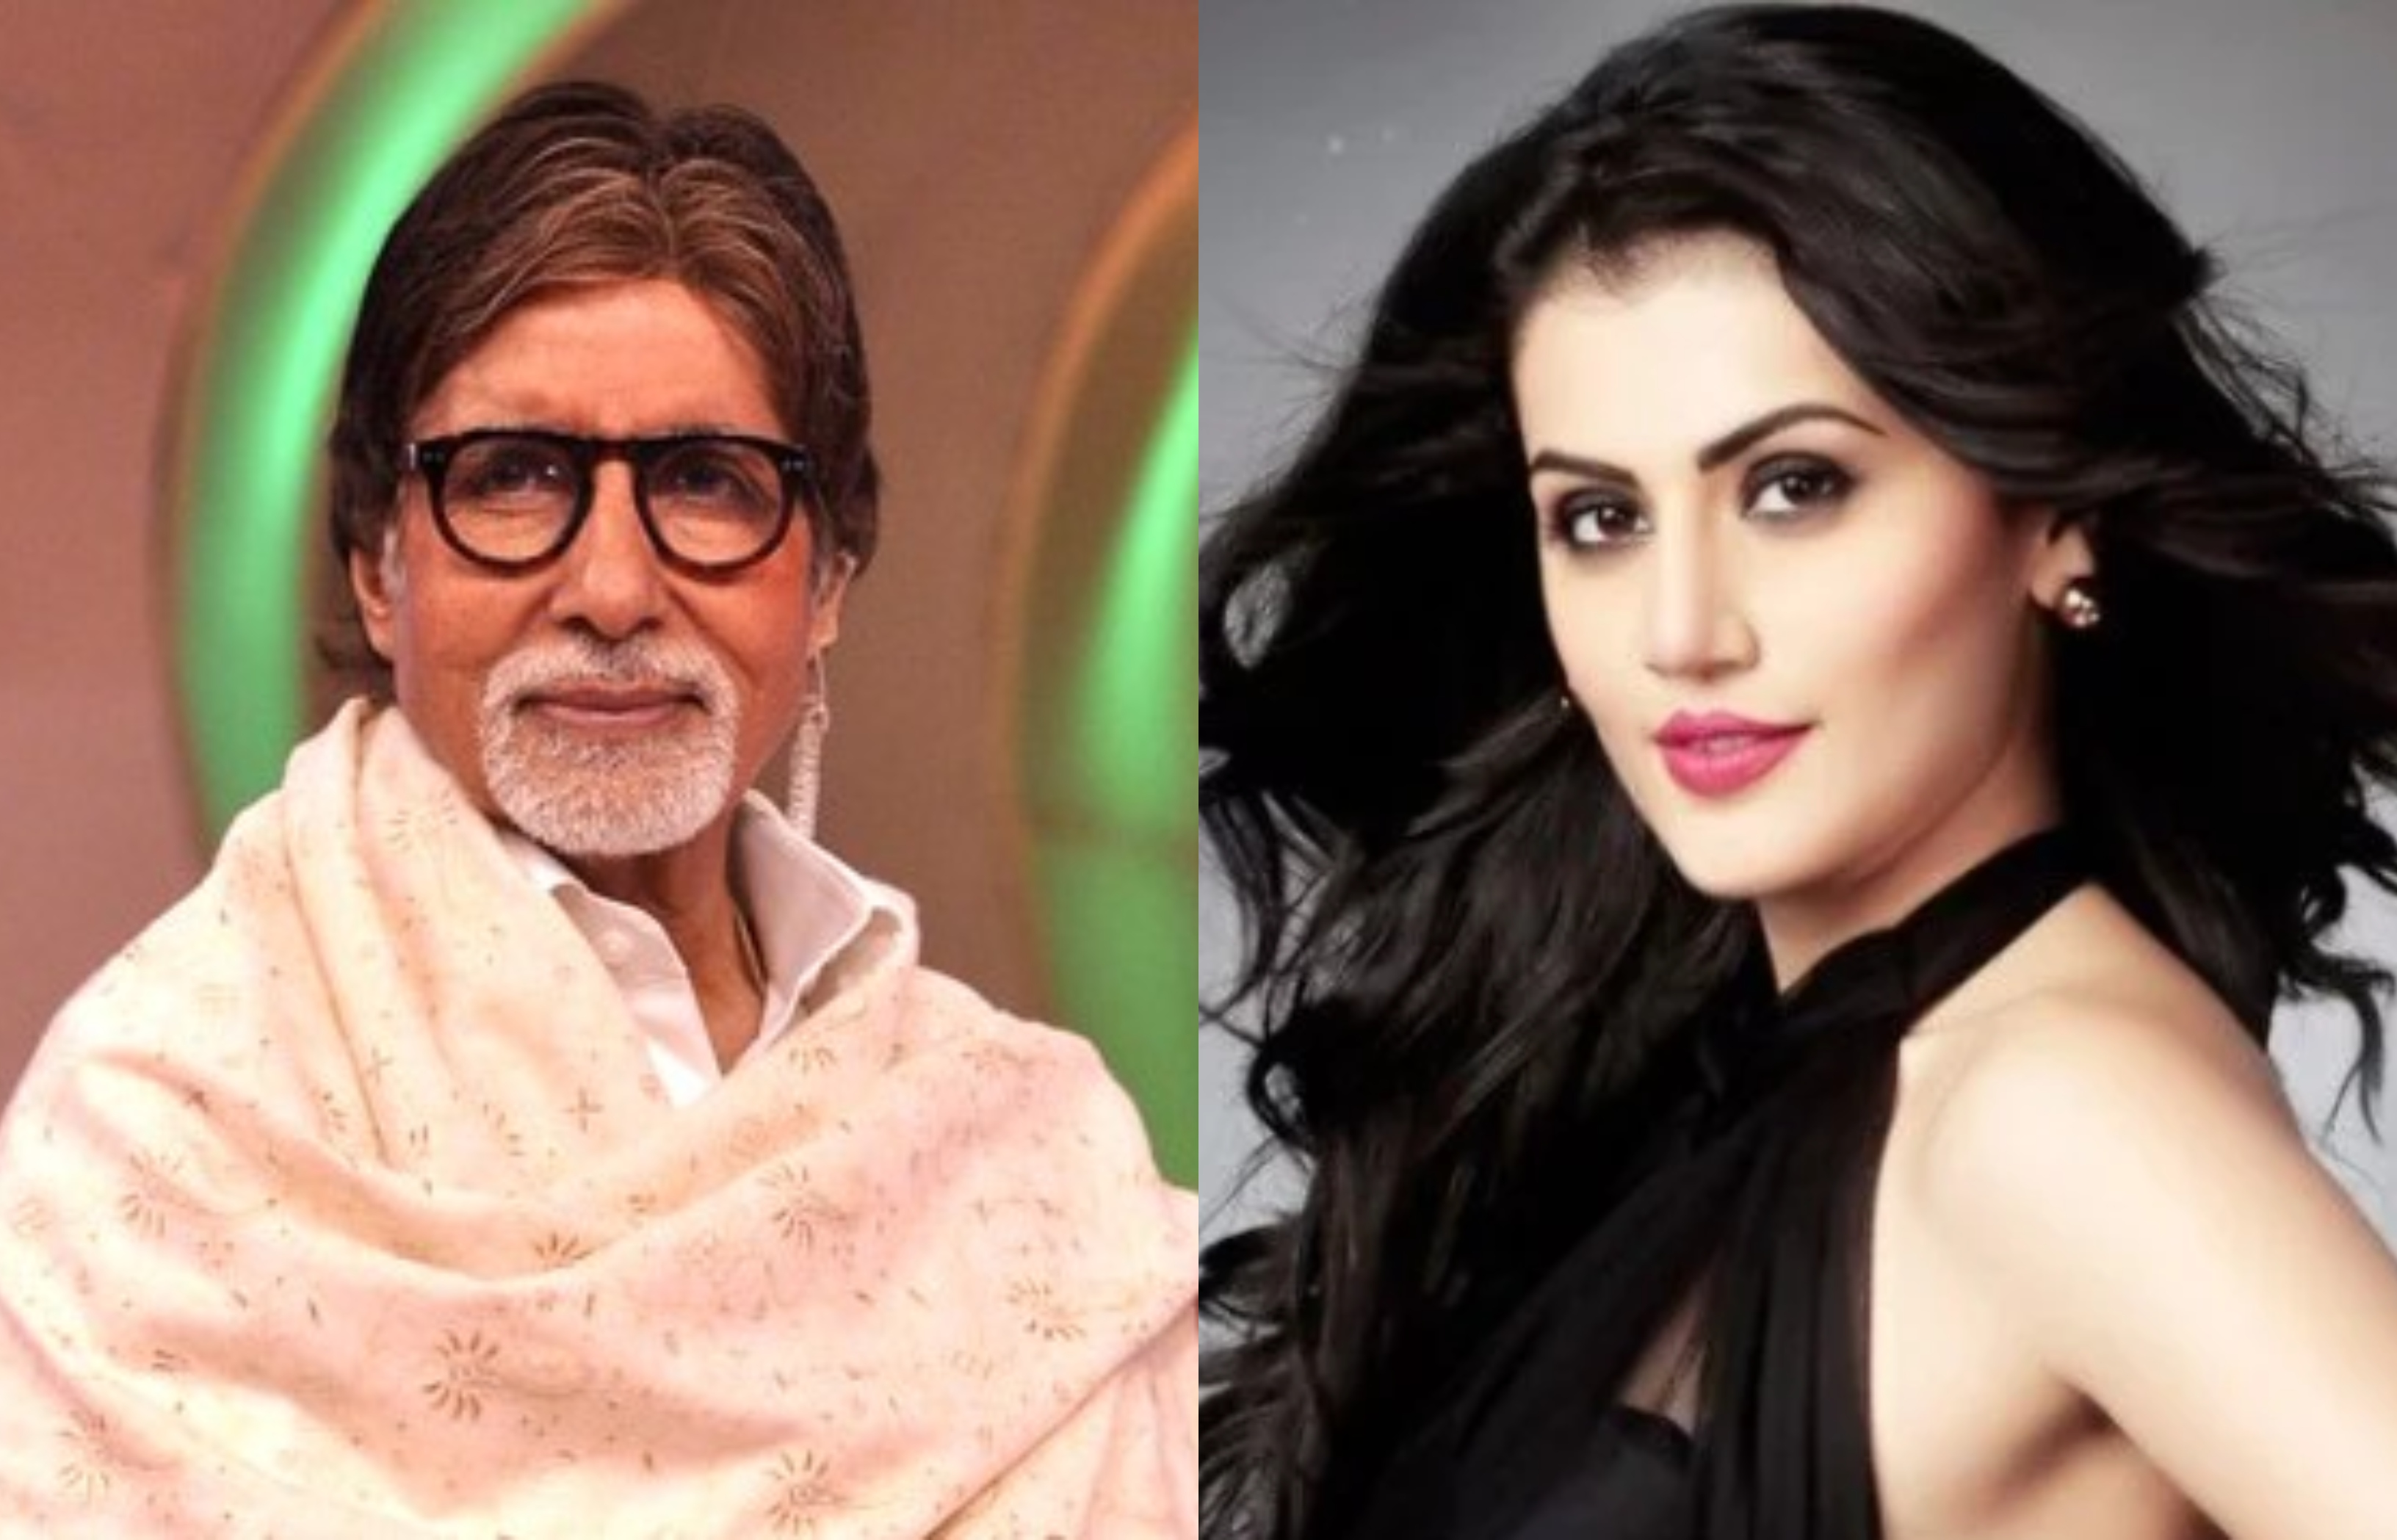 Happy Janmasthami 2019: Amitabh Bachchan, Taapse Pannu and others wish on the occasion